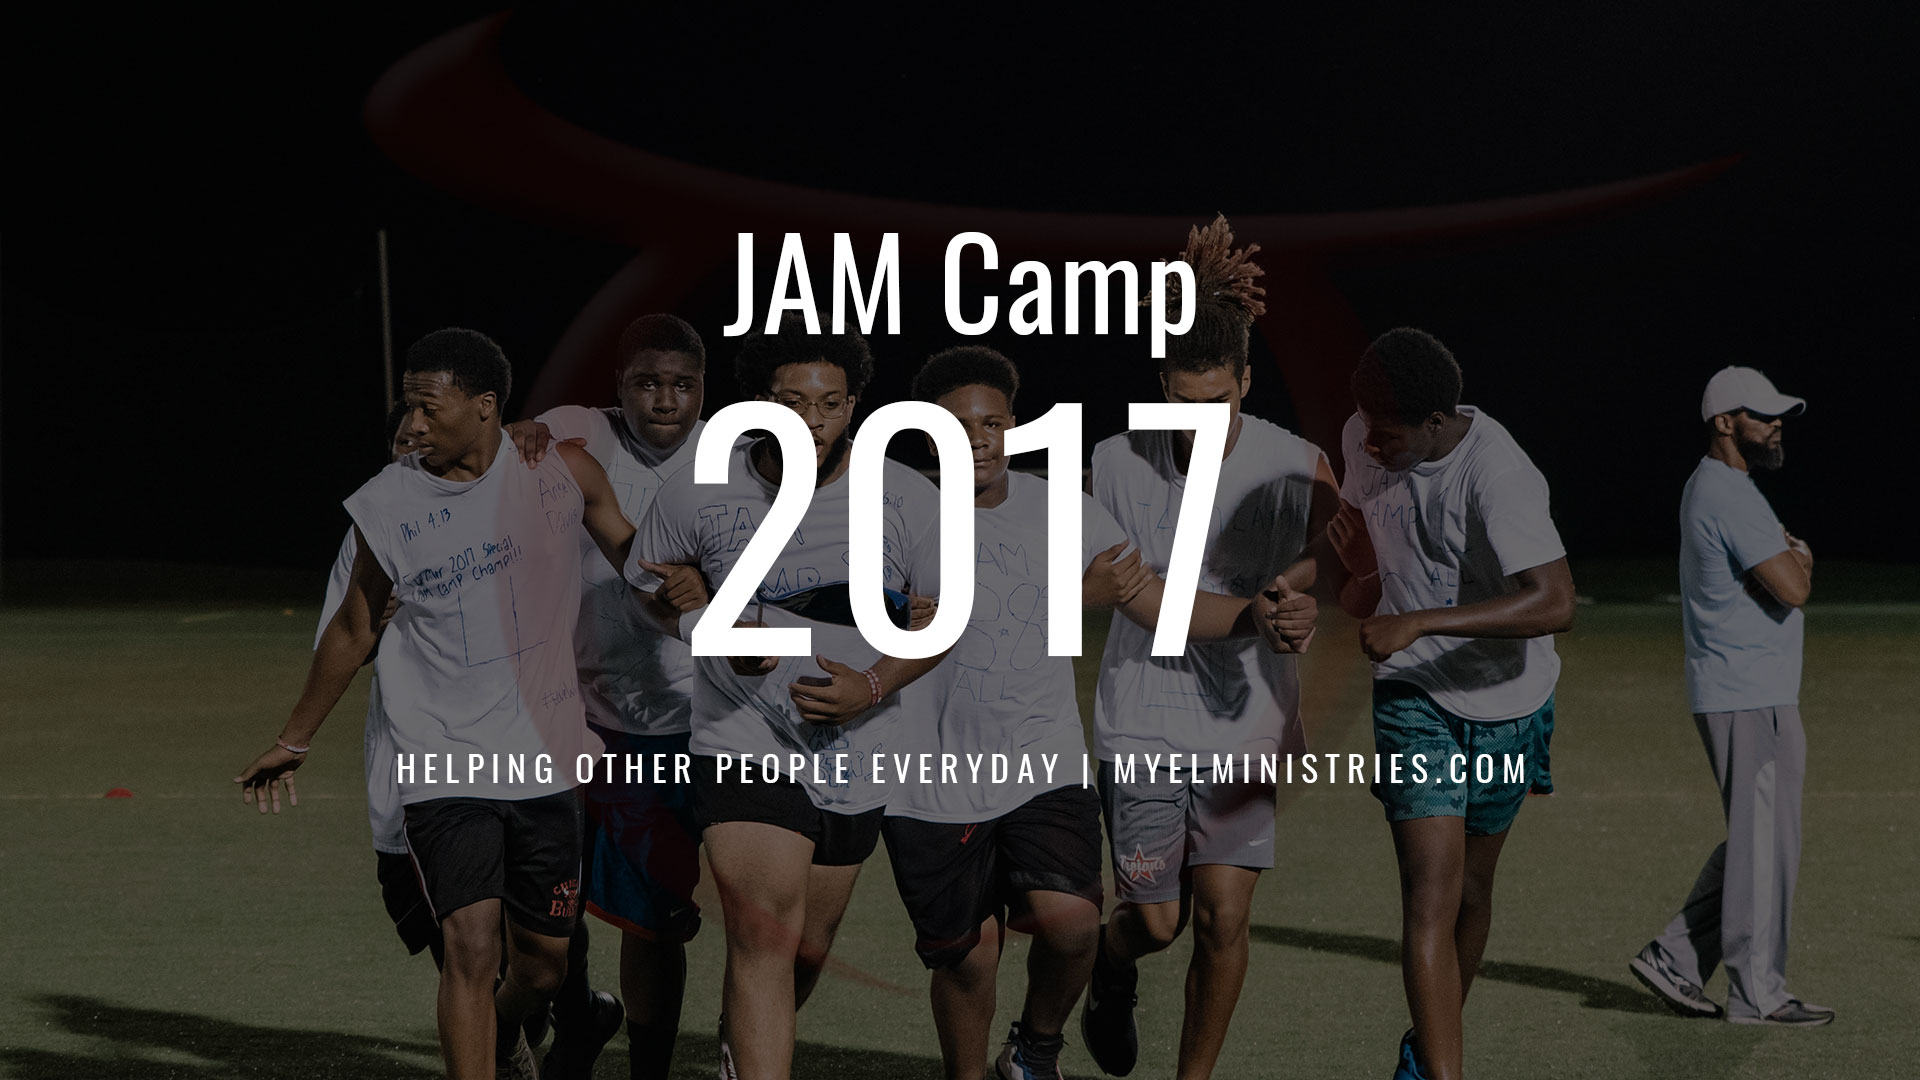 image for 2017 JAM Camp